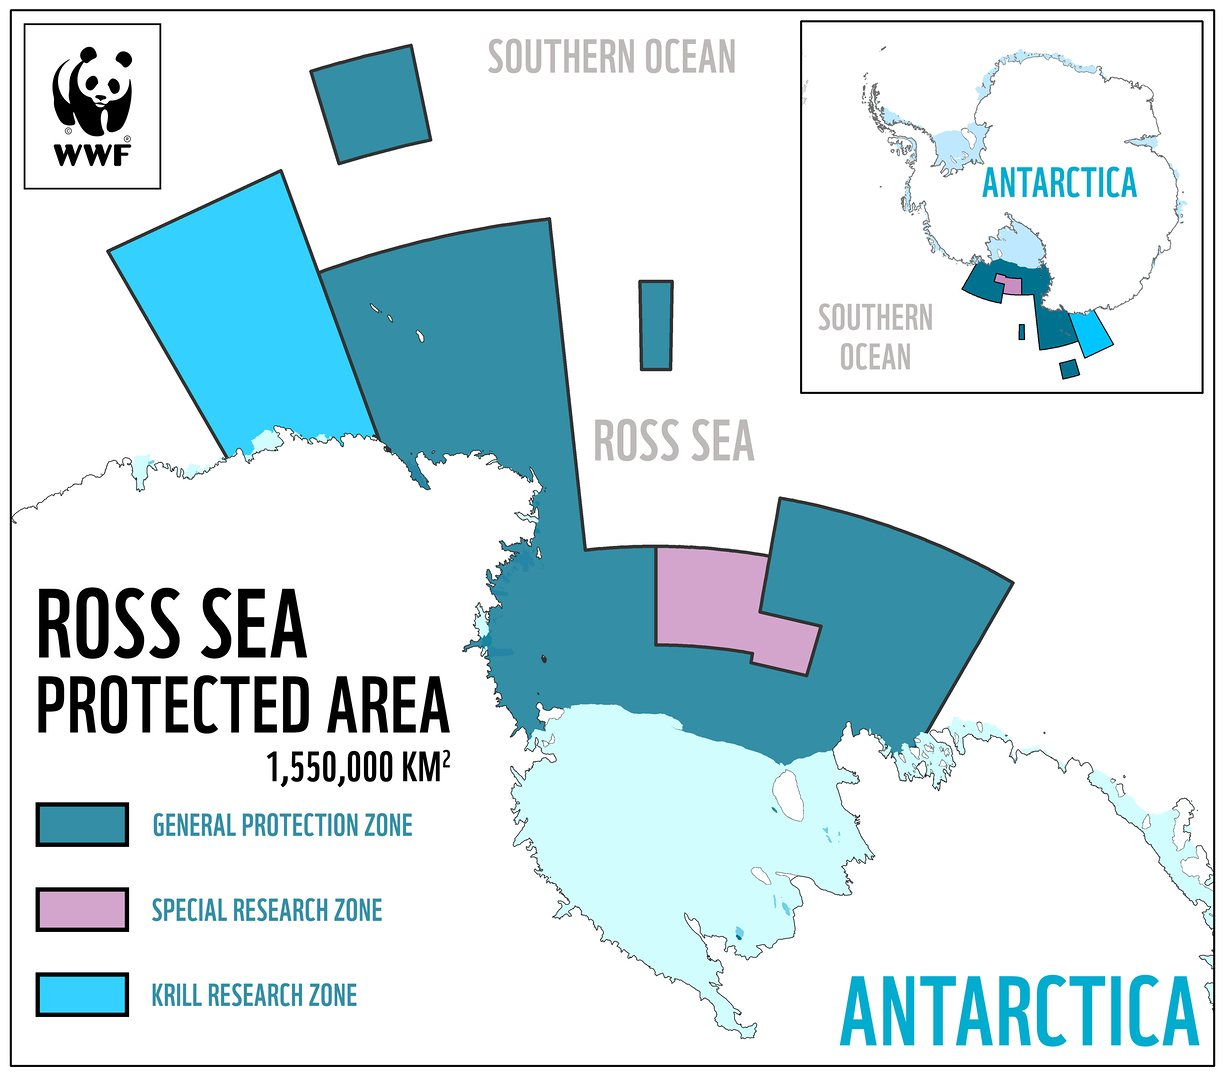 map-wwf-protected-area-ross-sea-antarctica